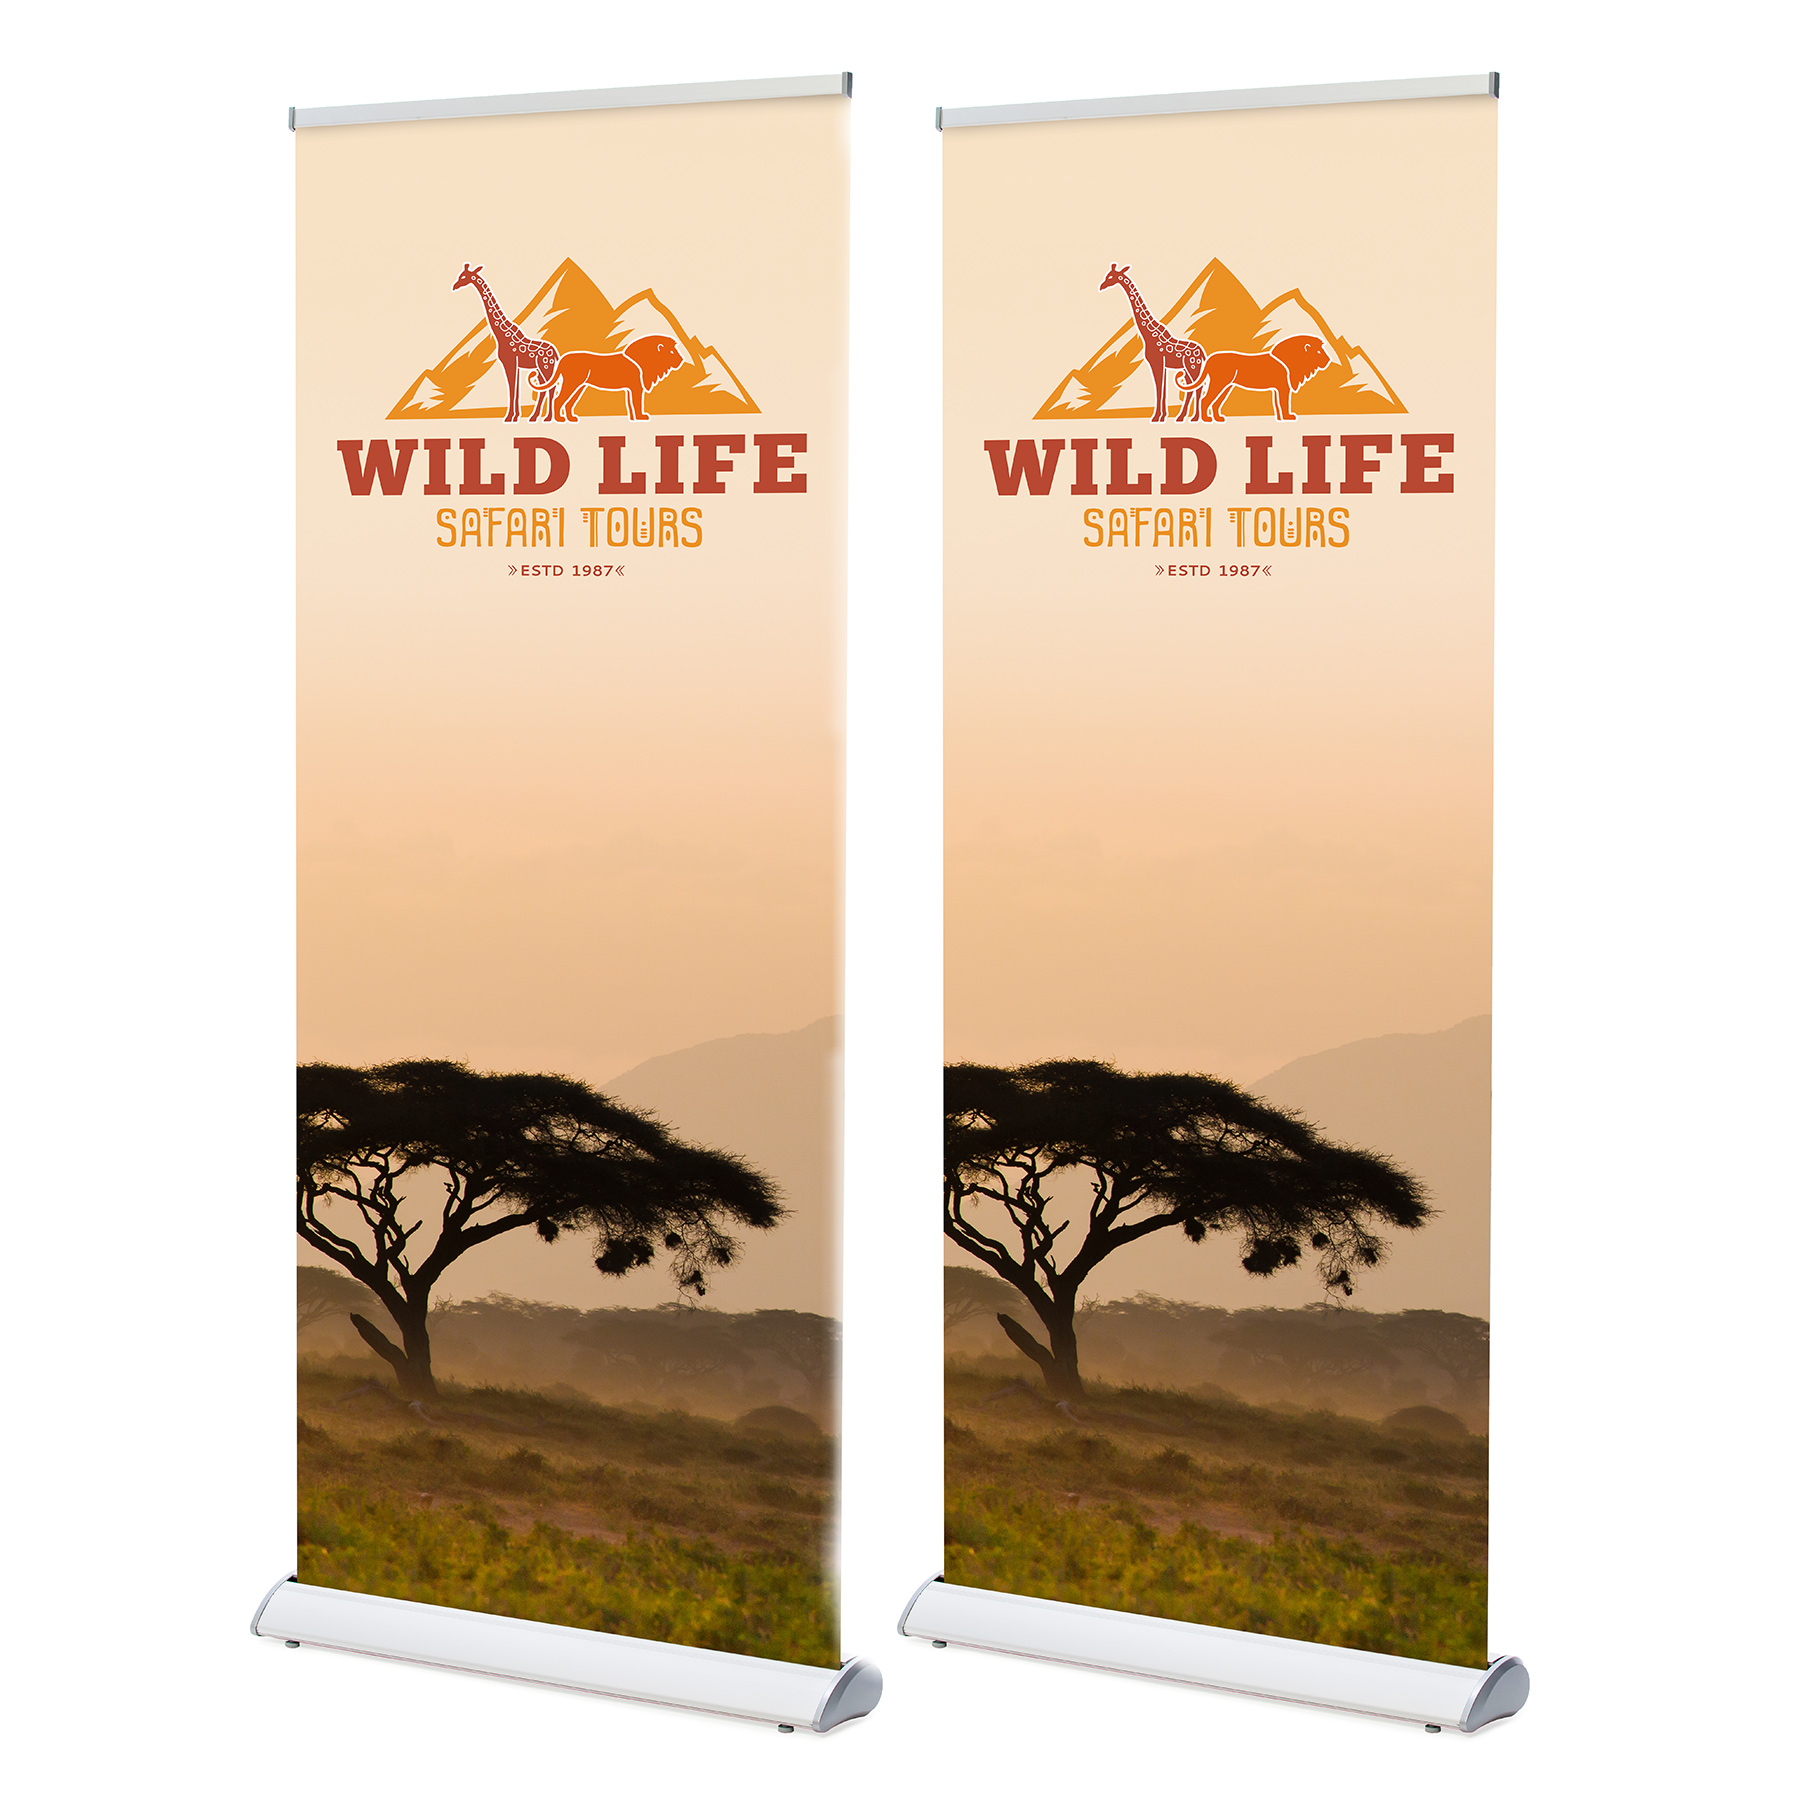 Beurs - Roll-up banners